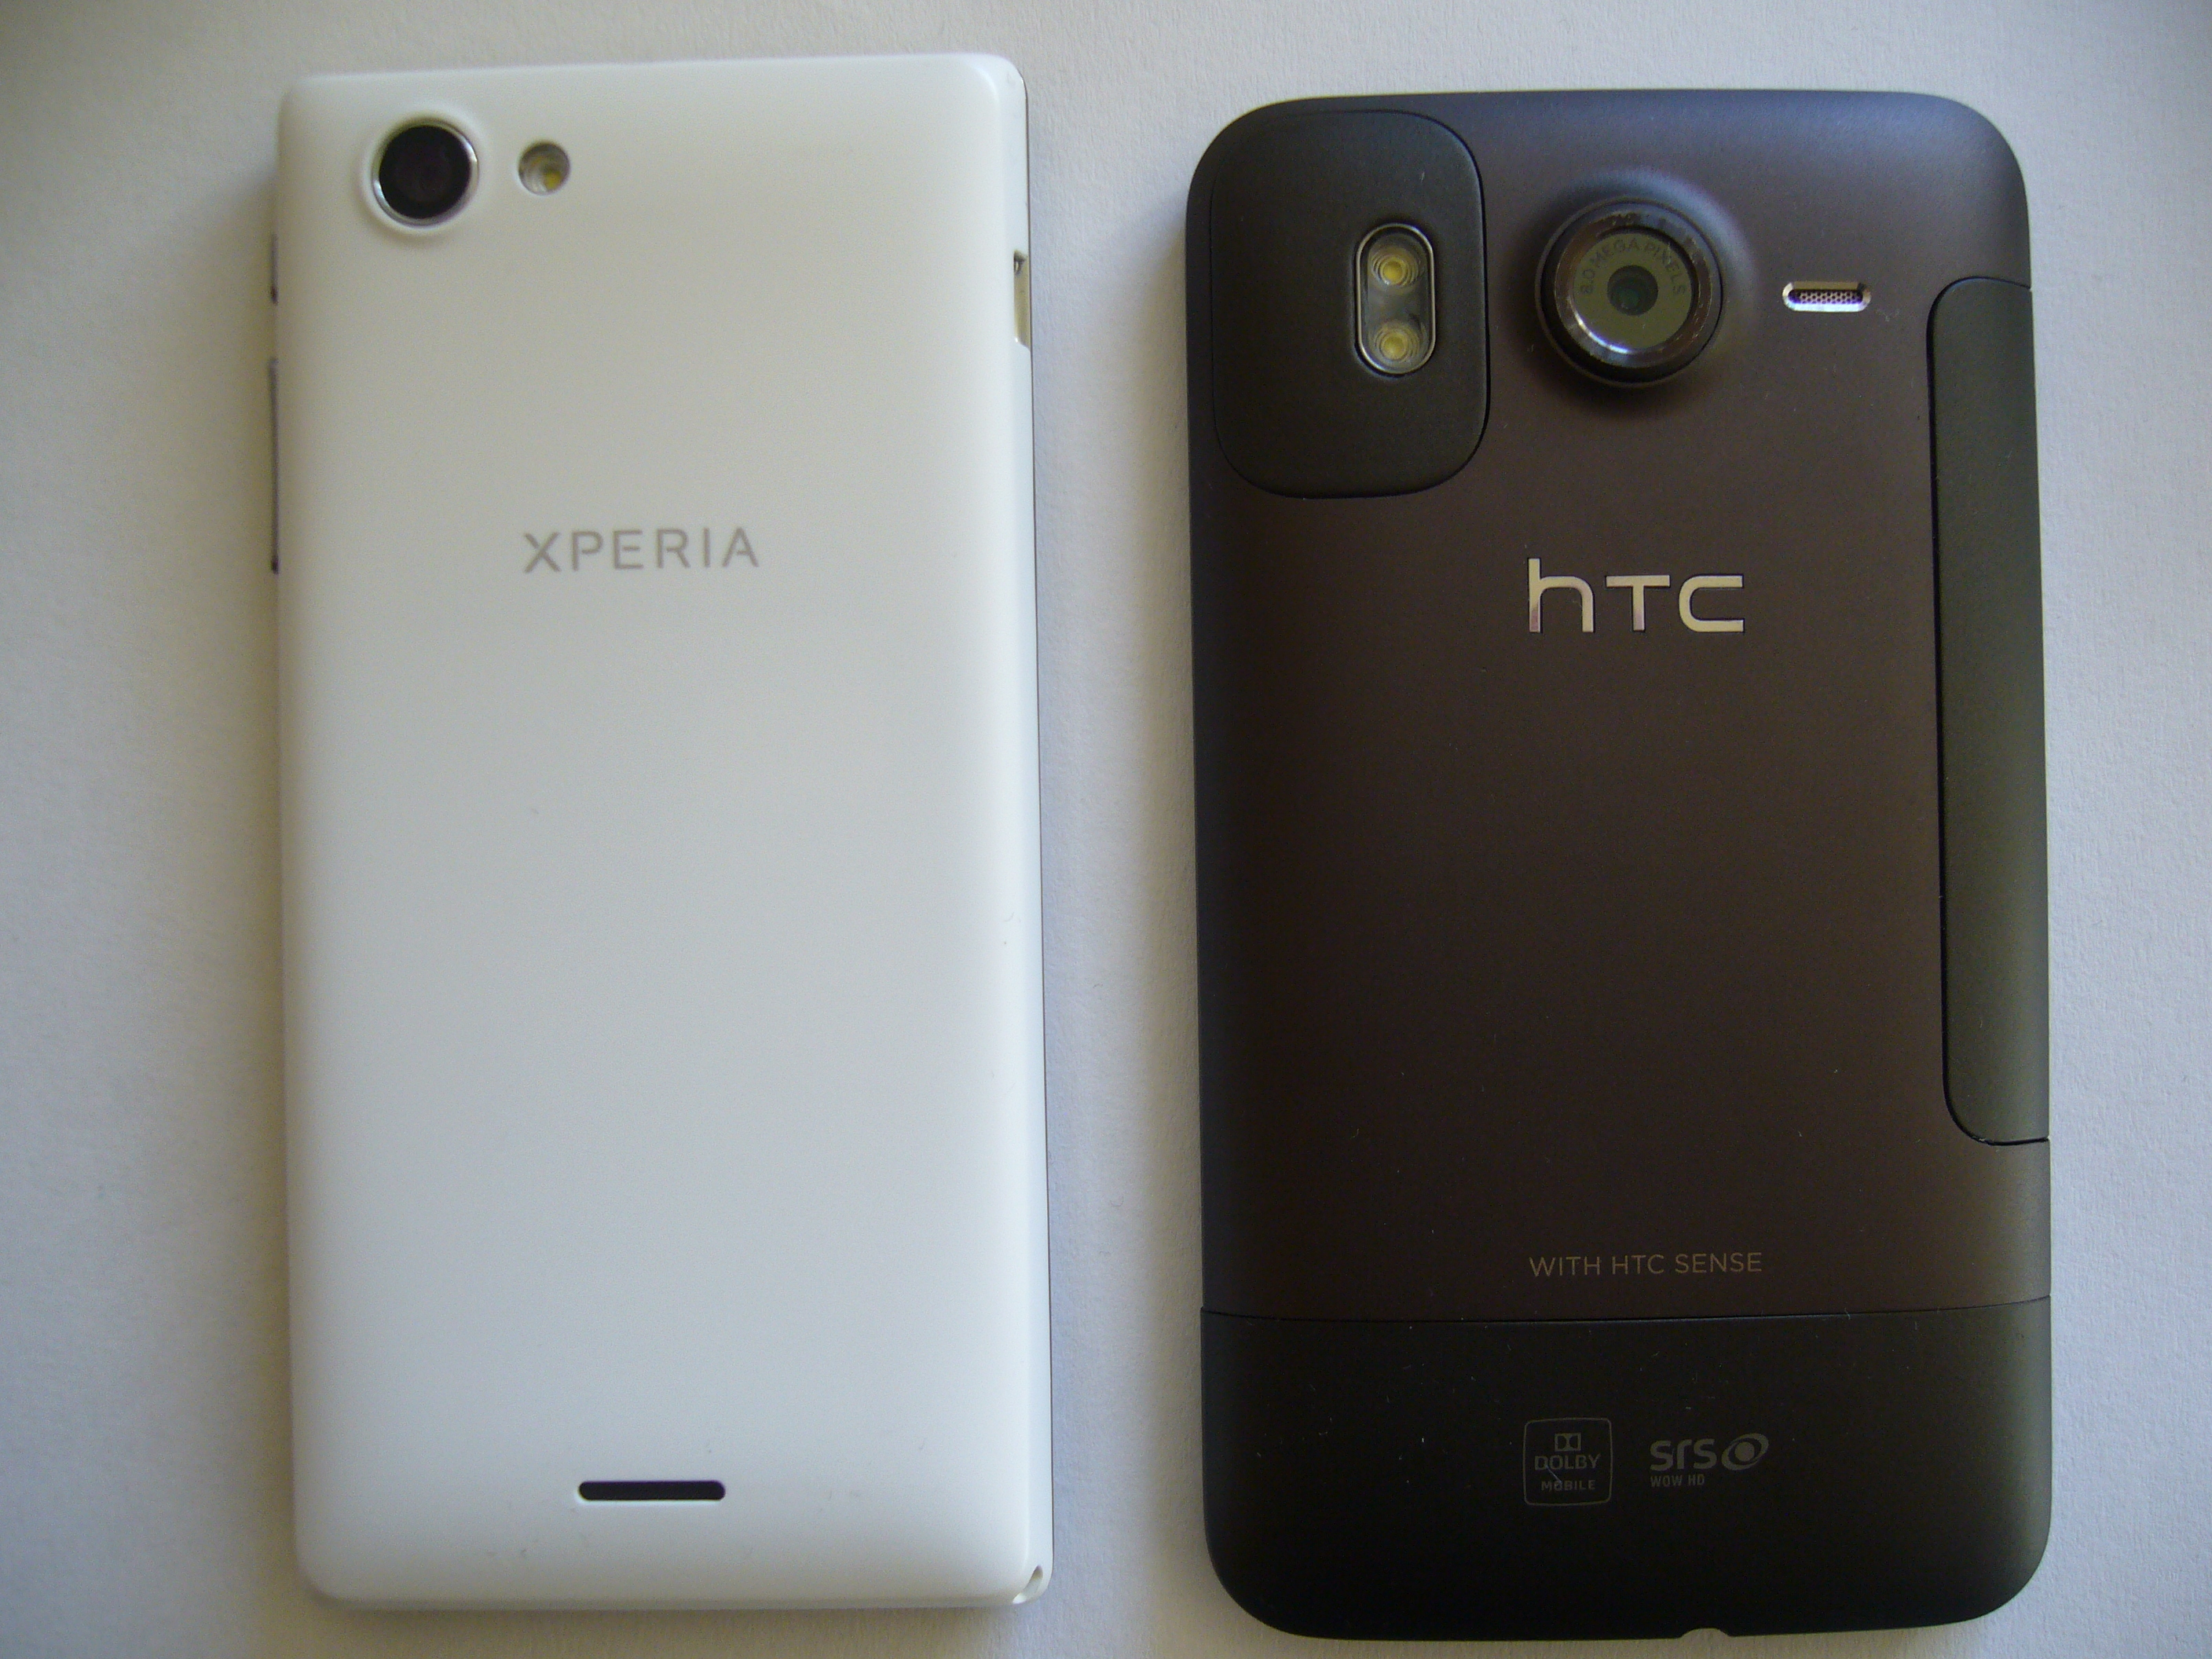 comment ouvrir le sony xperia j